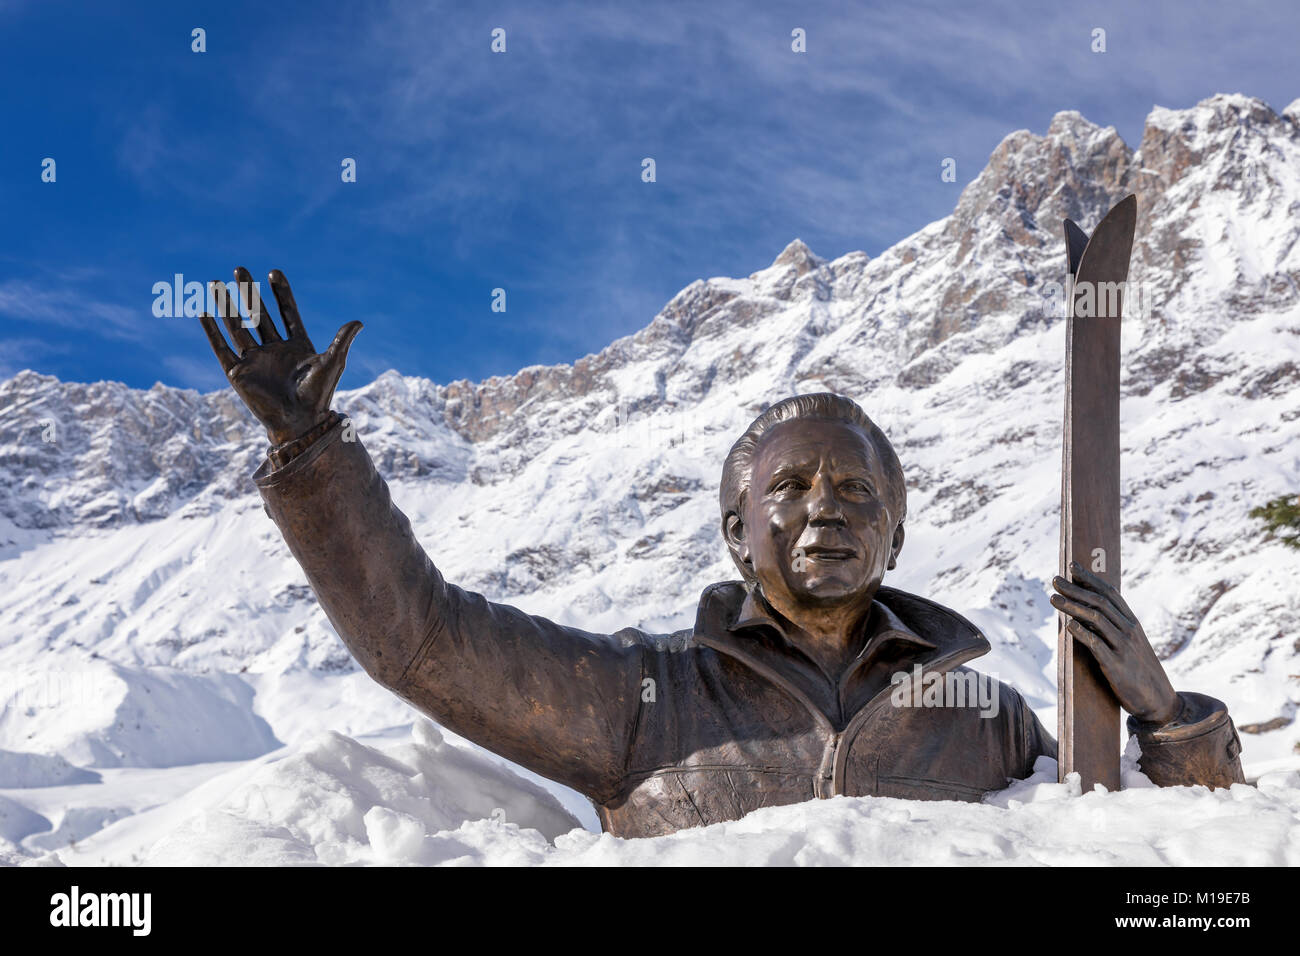 Statue of Mike Bongiorno covered in snow, Breuil-Cervinia, Aosta Valley, Italy - Stock Image